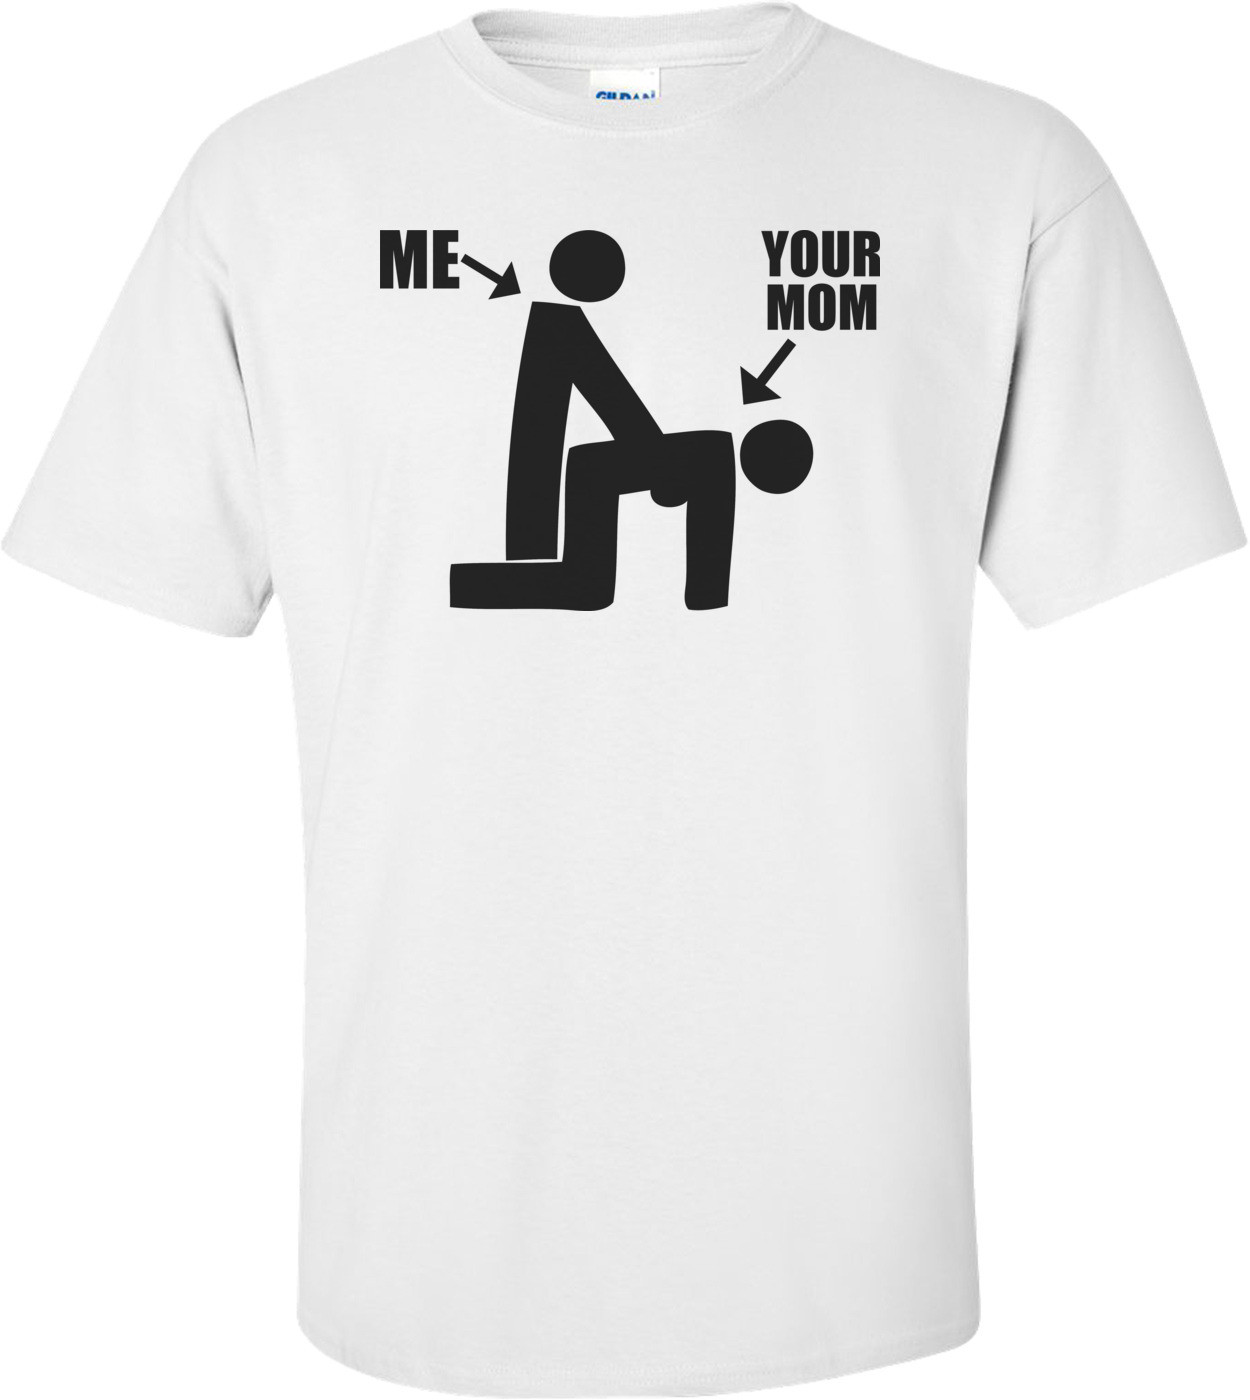 Me And Your Mom Funny Shirt